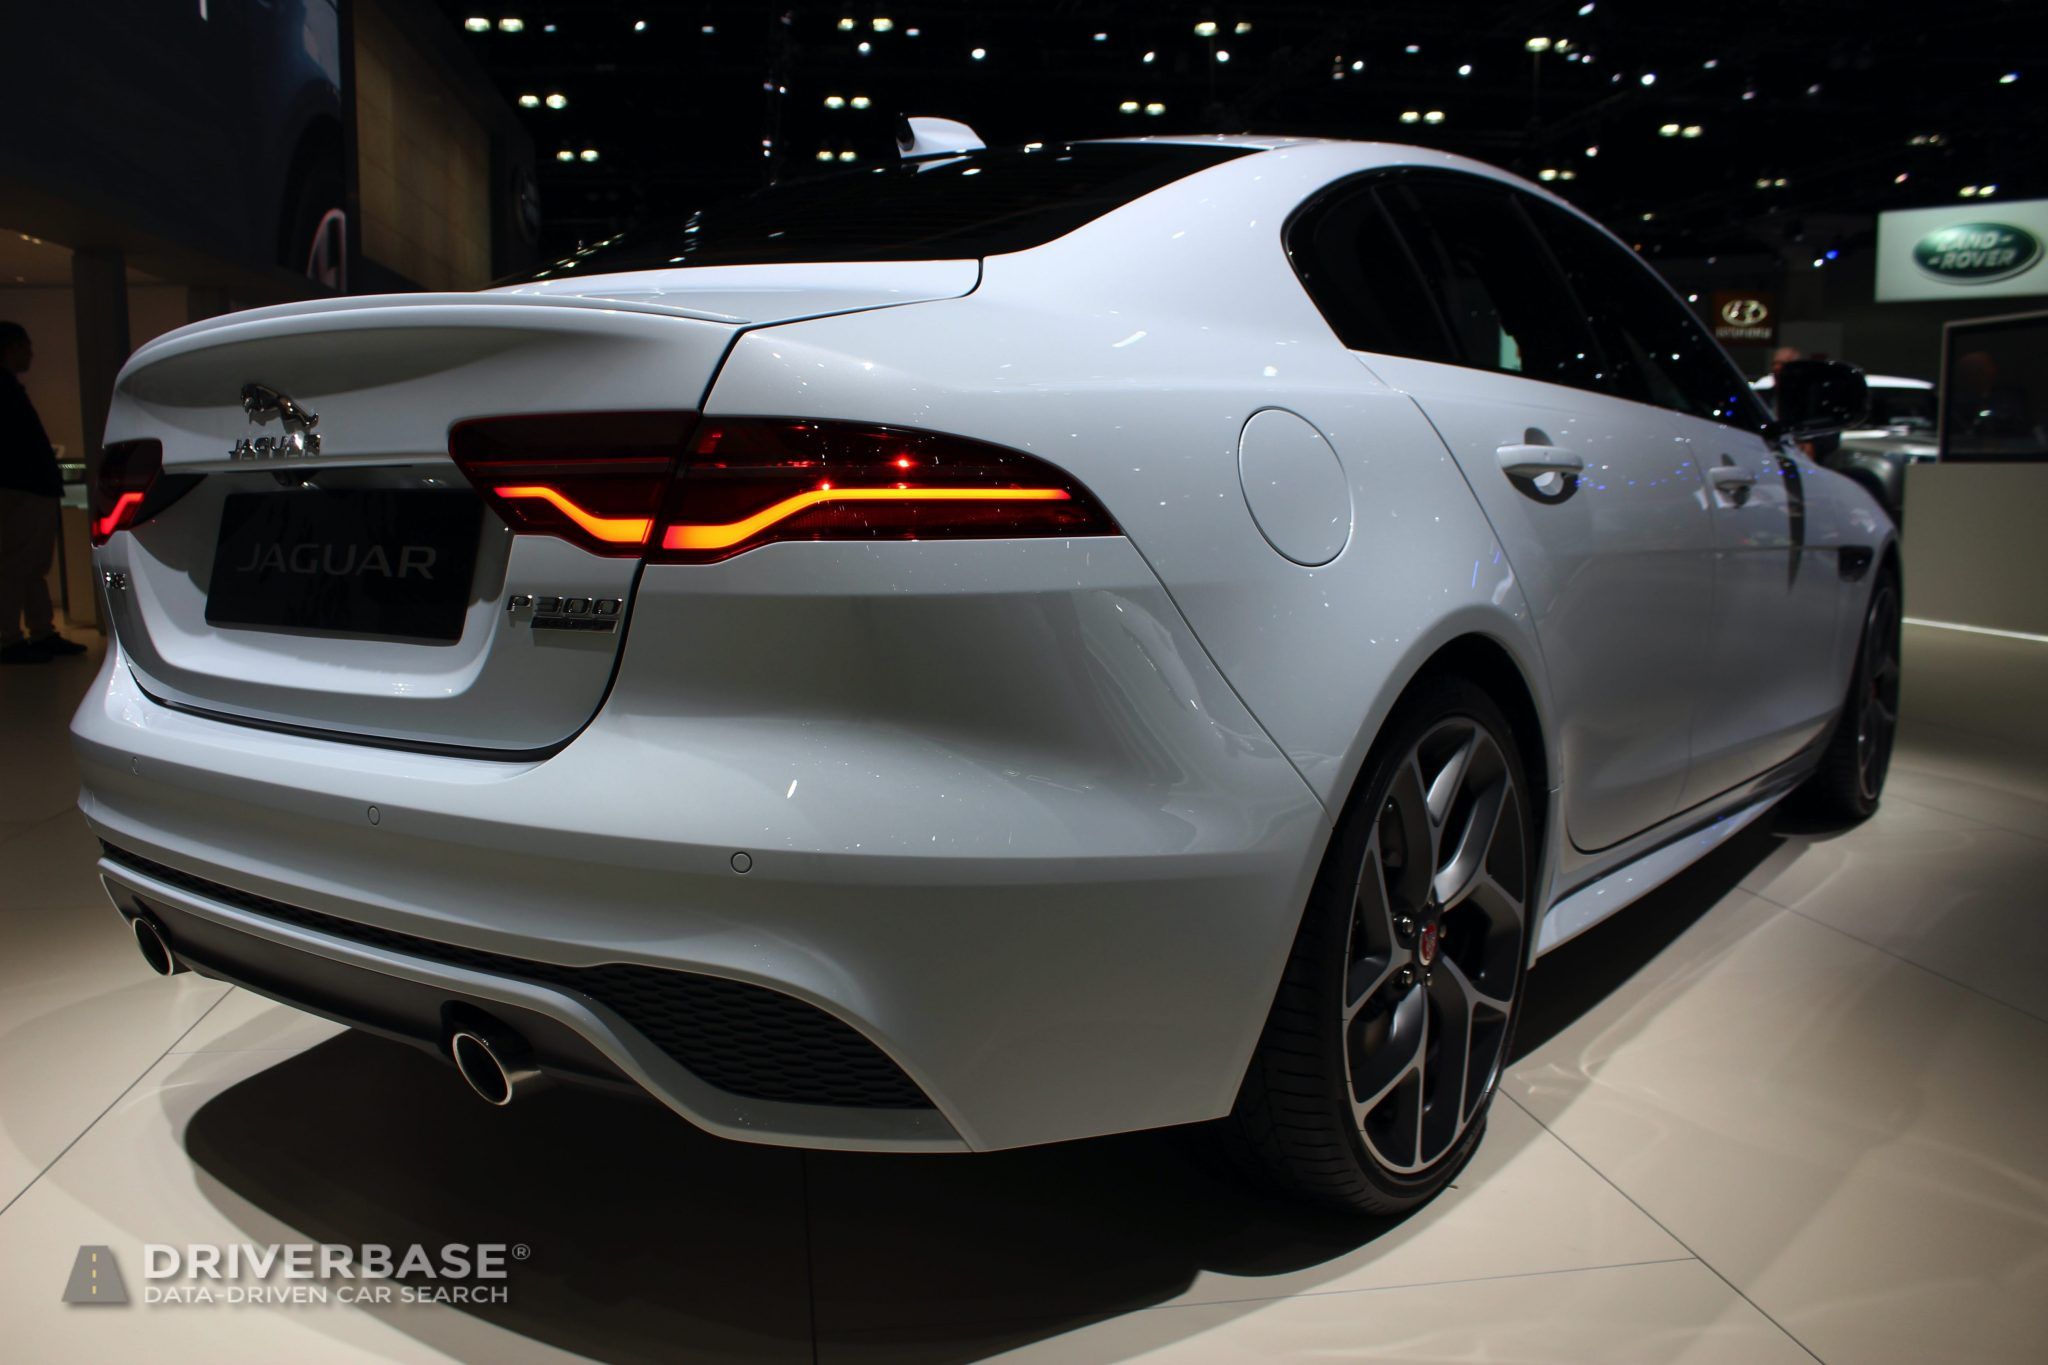 2020 Jaguar XE P300 at the 2019 Los Angeles Auto Show